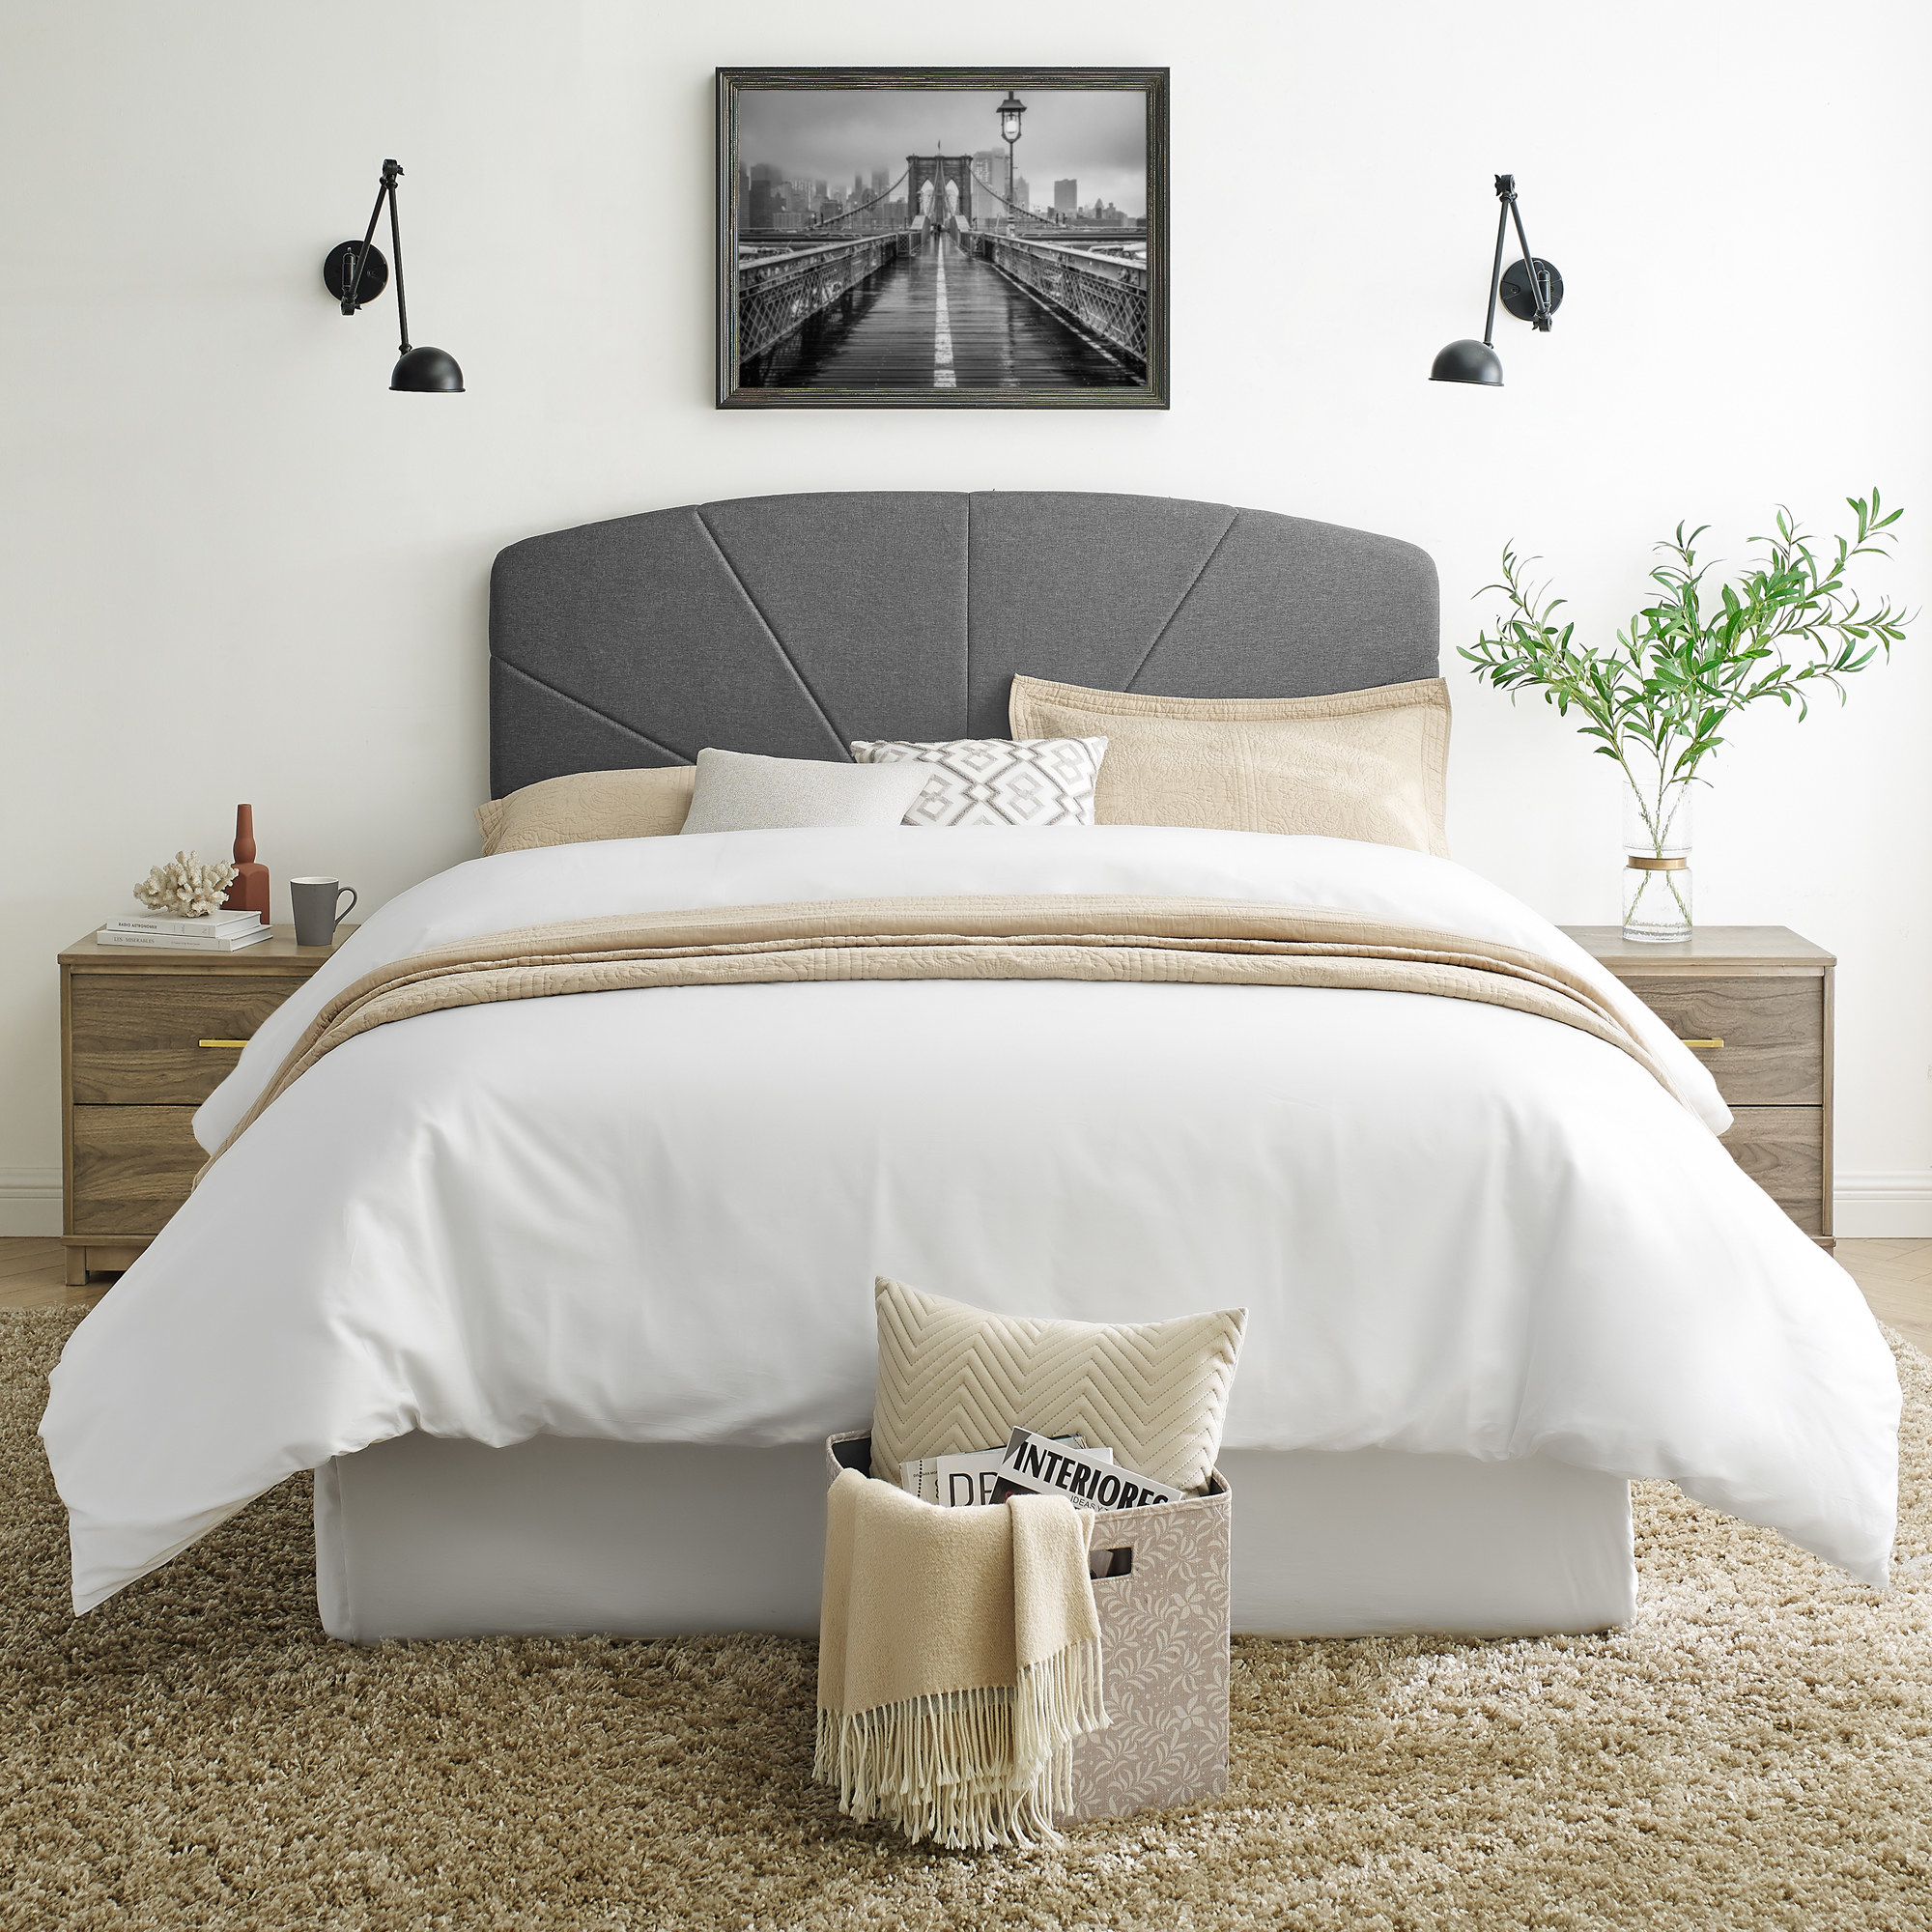 The headboard displayed on a queen-sized bed to show its size and color